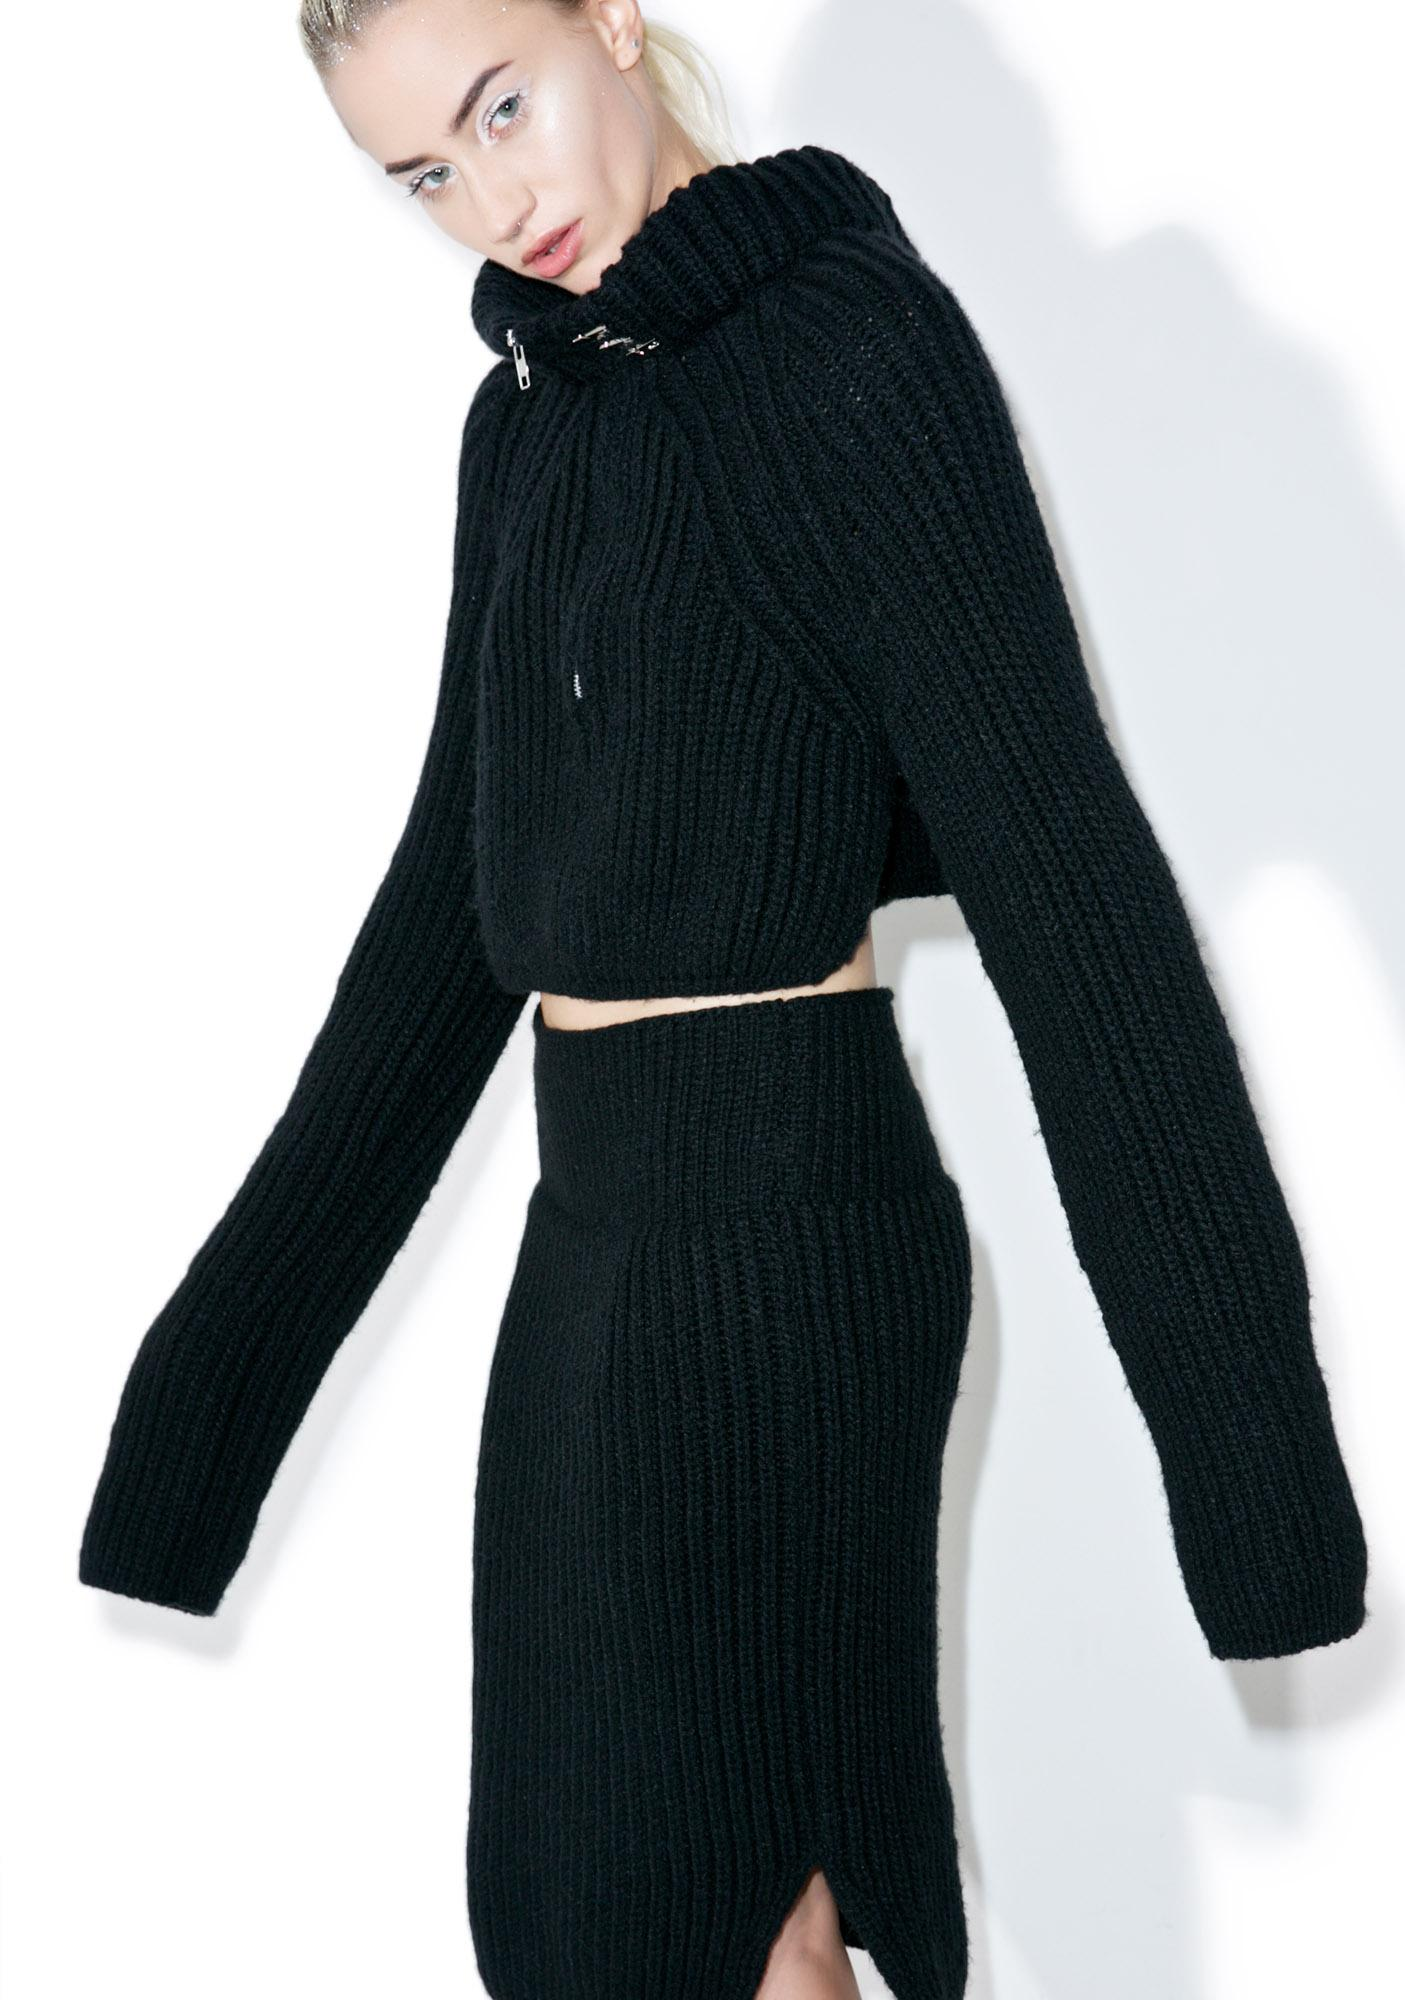 Maria ke Fisherman Noir Knit Top